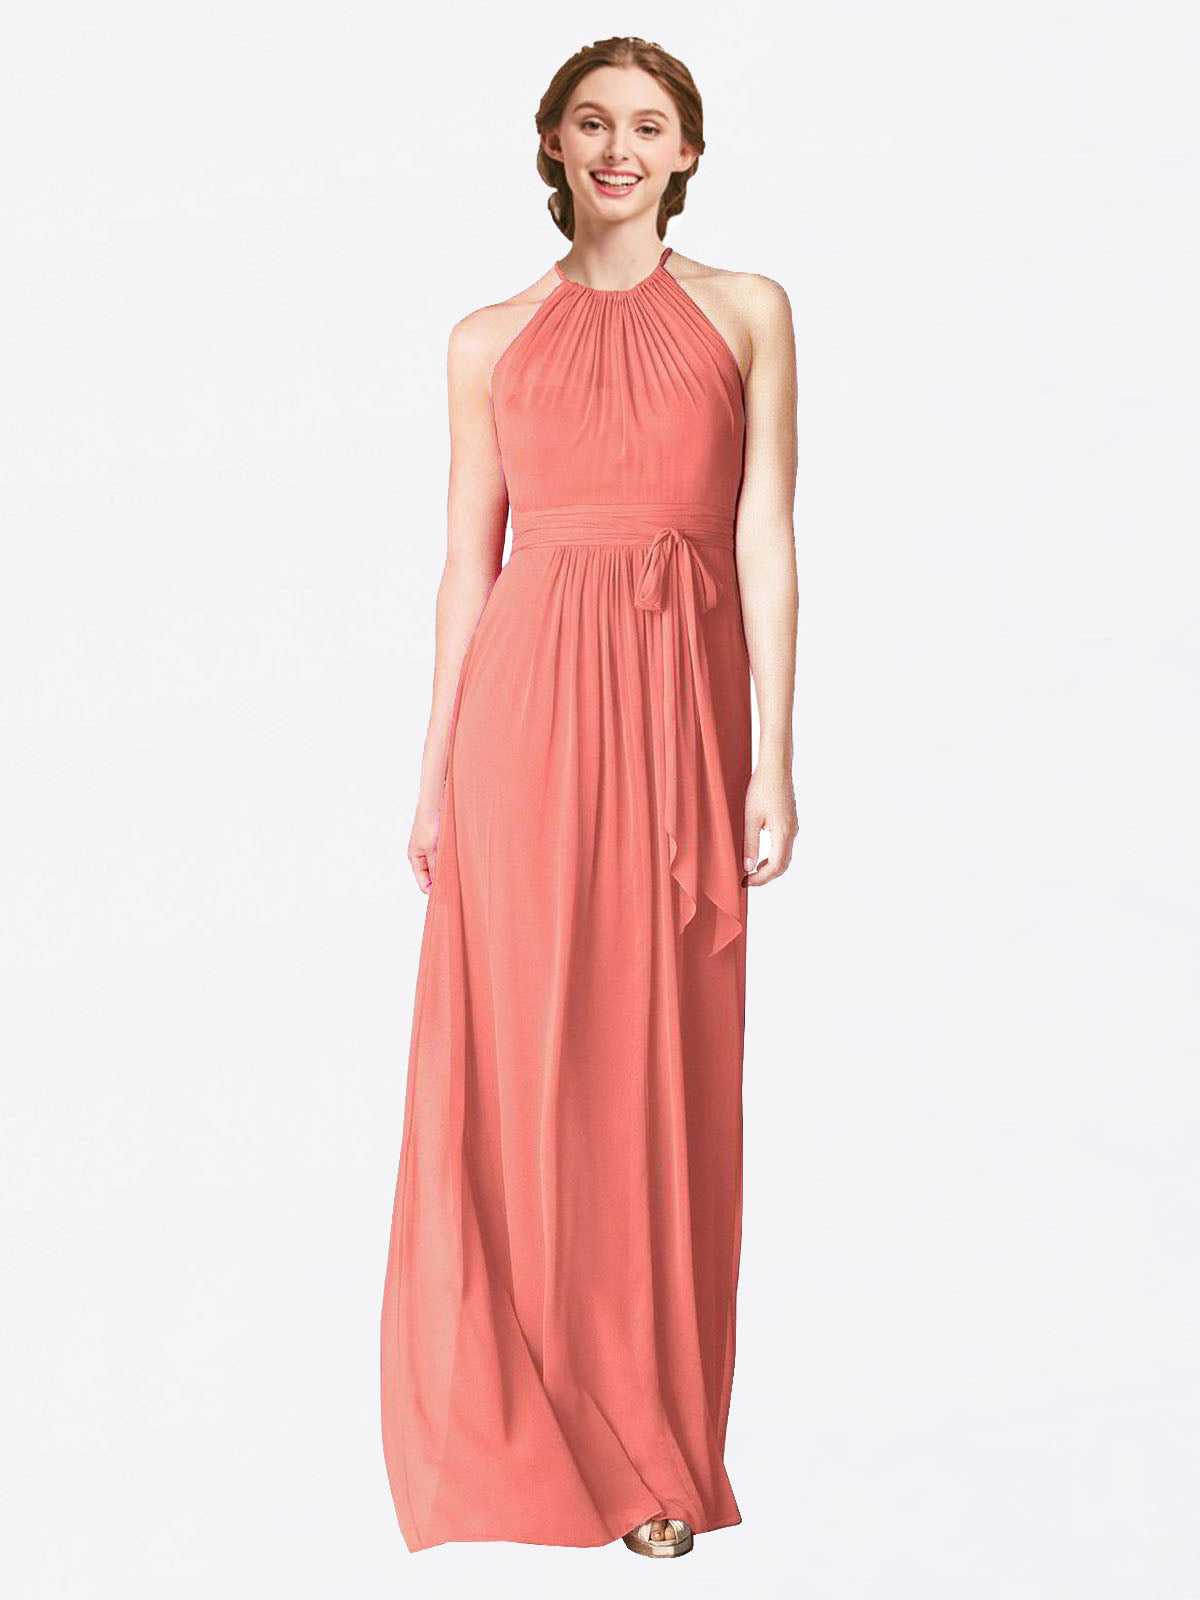 Long A-Line Halter Sleeveless Coral Chiffon Bridesmaid Dress Laura